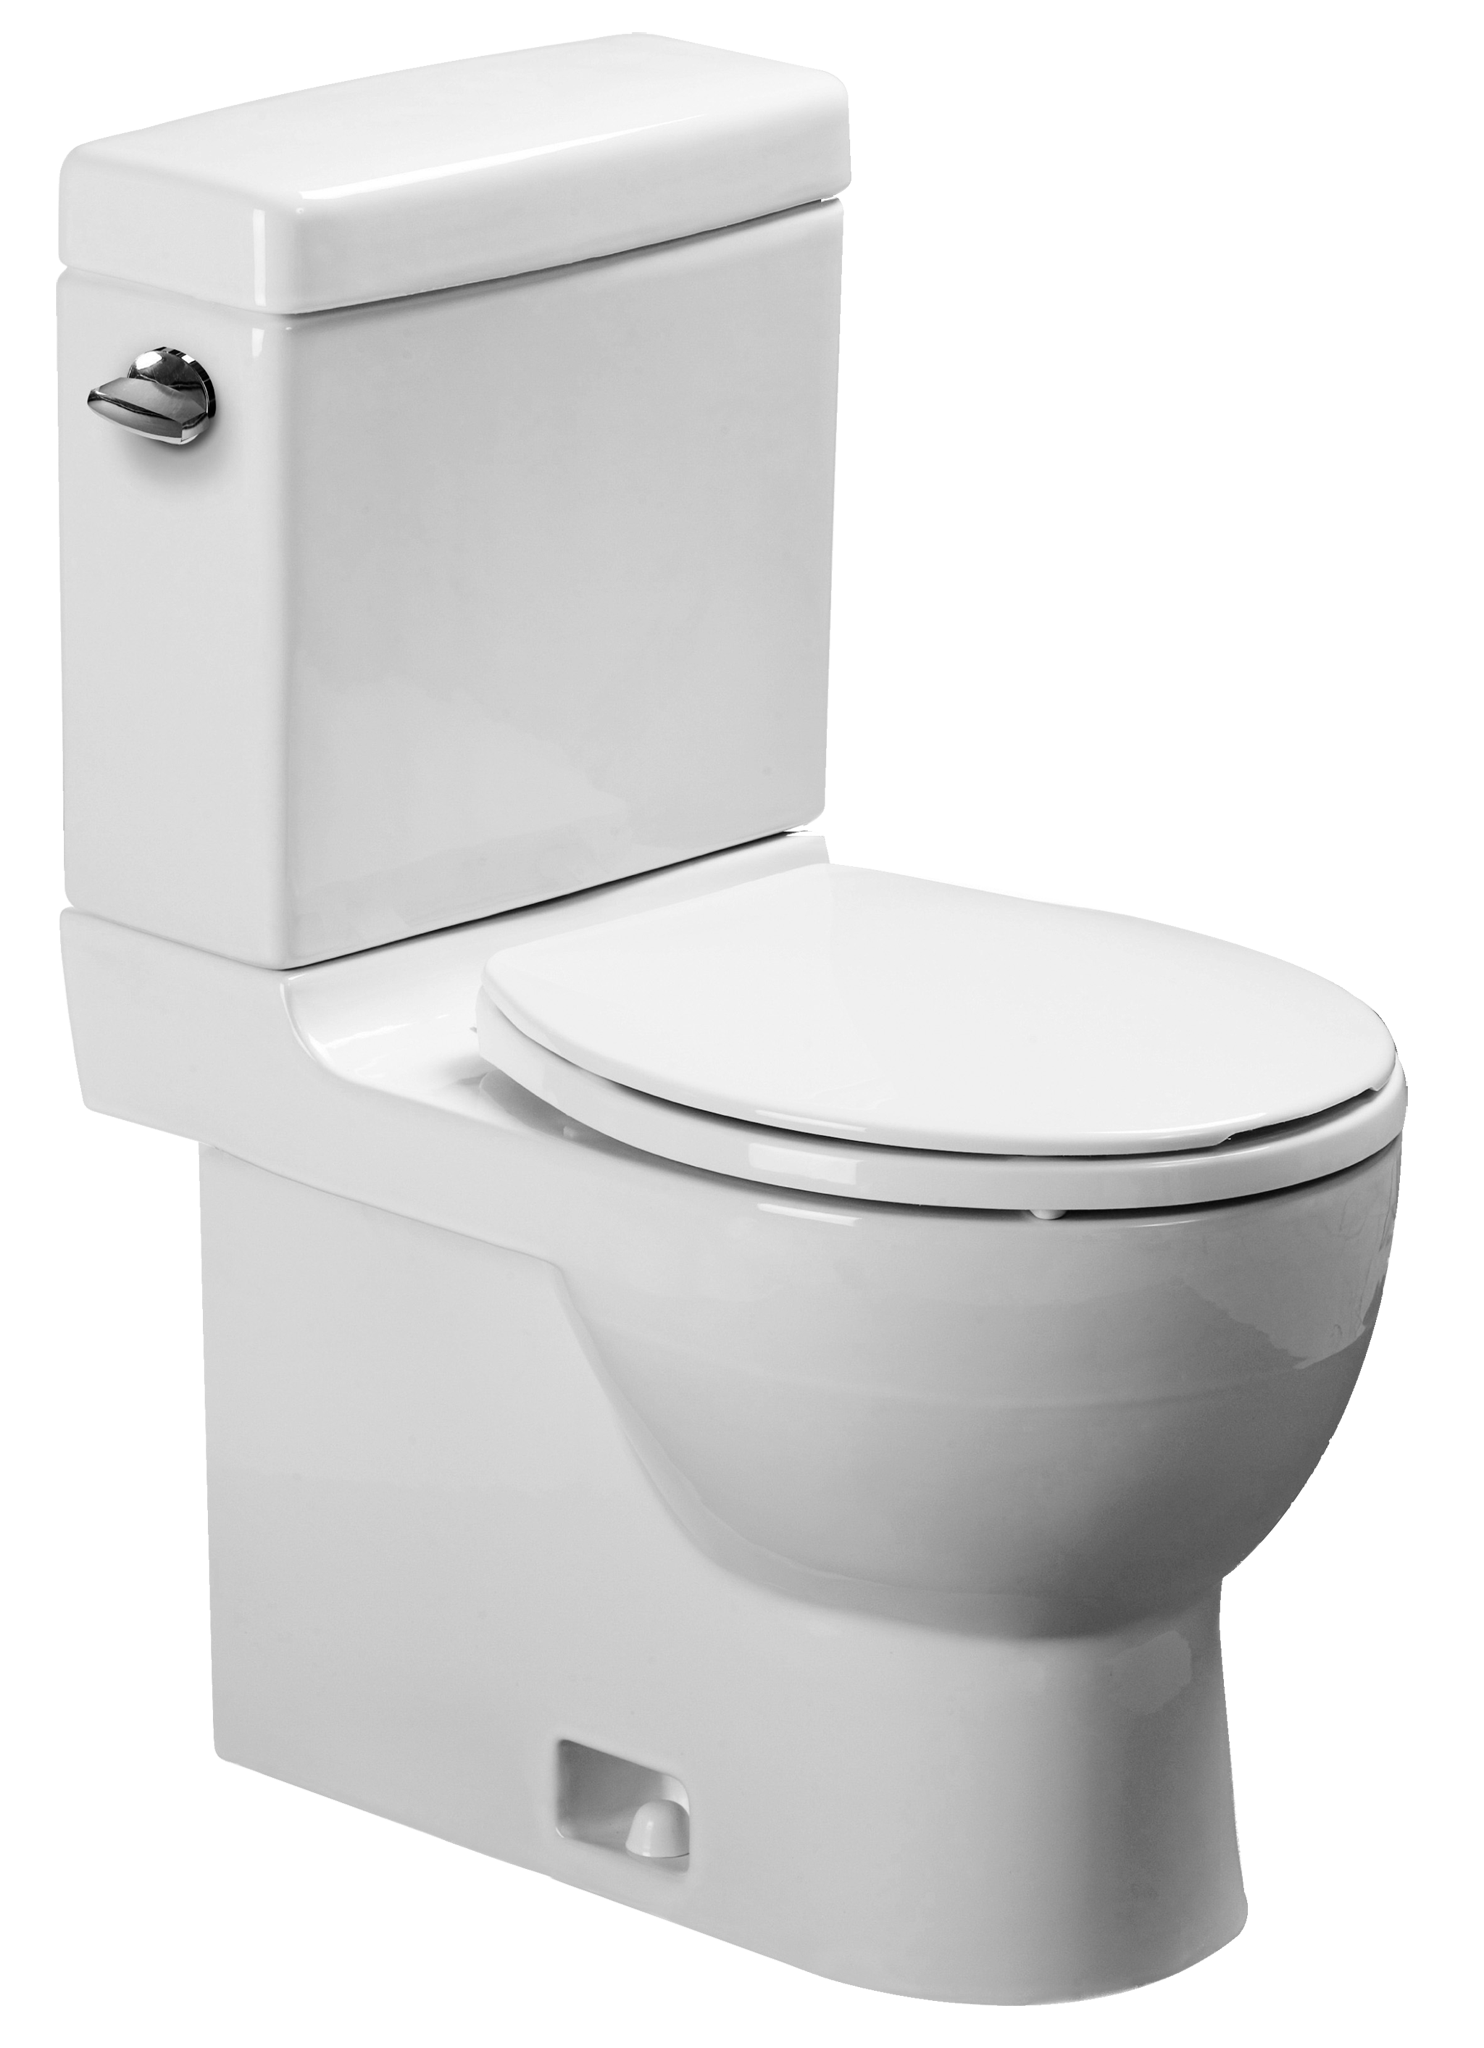 toilet png images are download crazypngm crazy png images download #29188